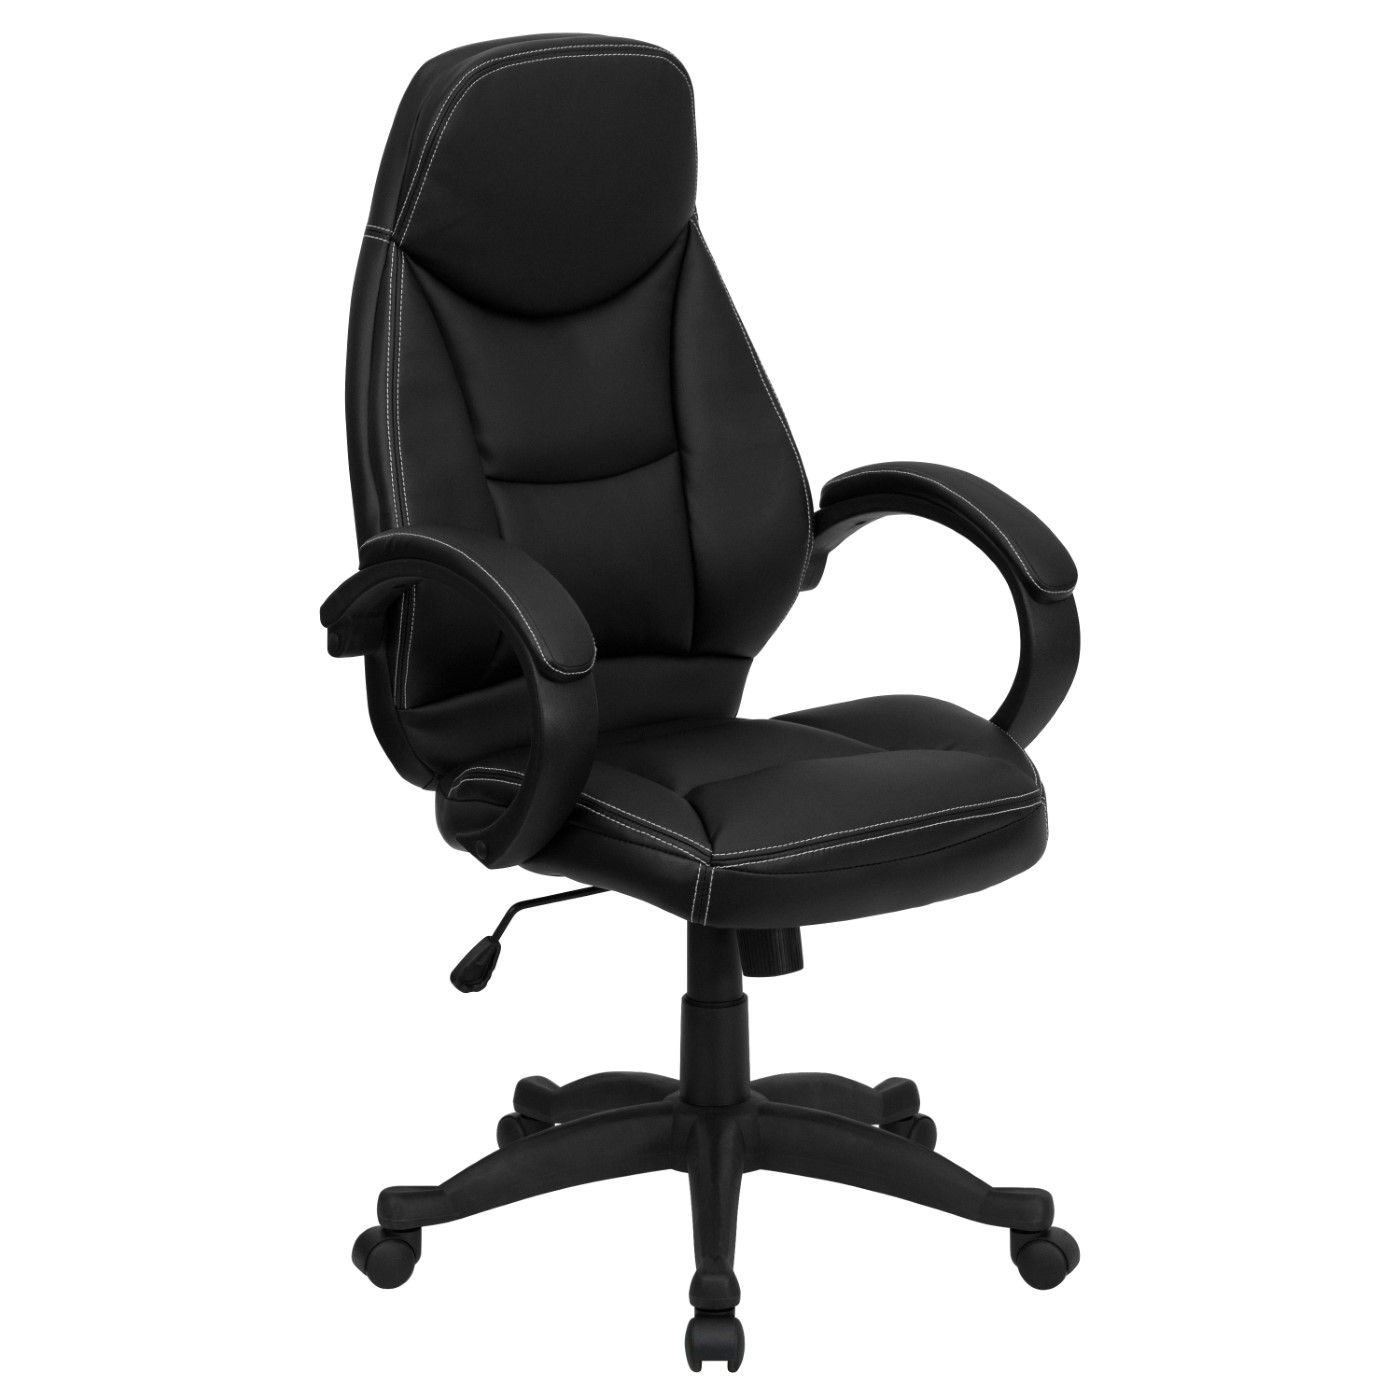 High Back Black LeatherSoft Contemporary Executive Swivel Ergonomic Office Chair with Curved Back and Loop Arms